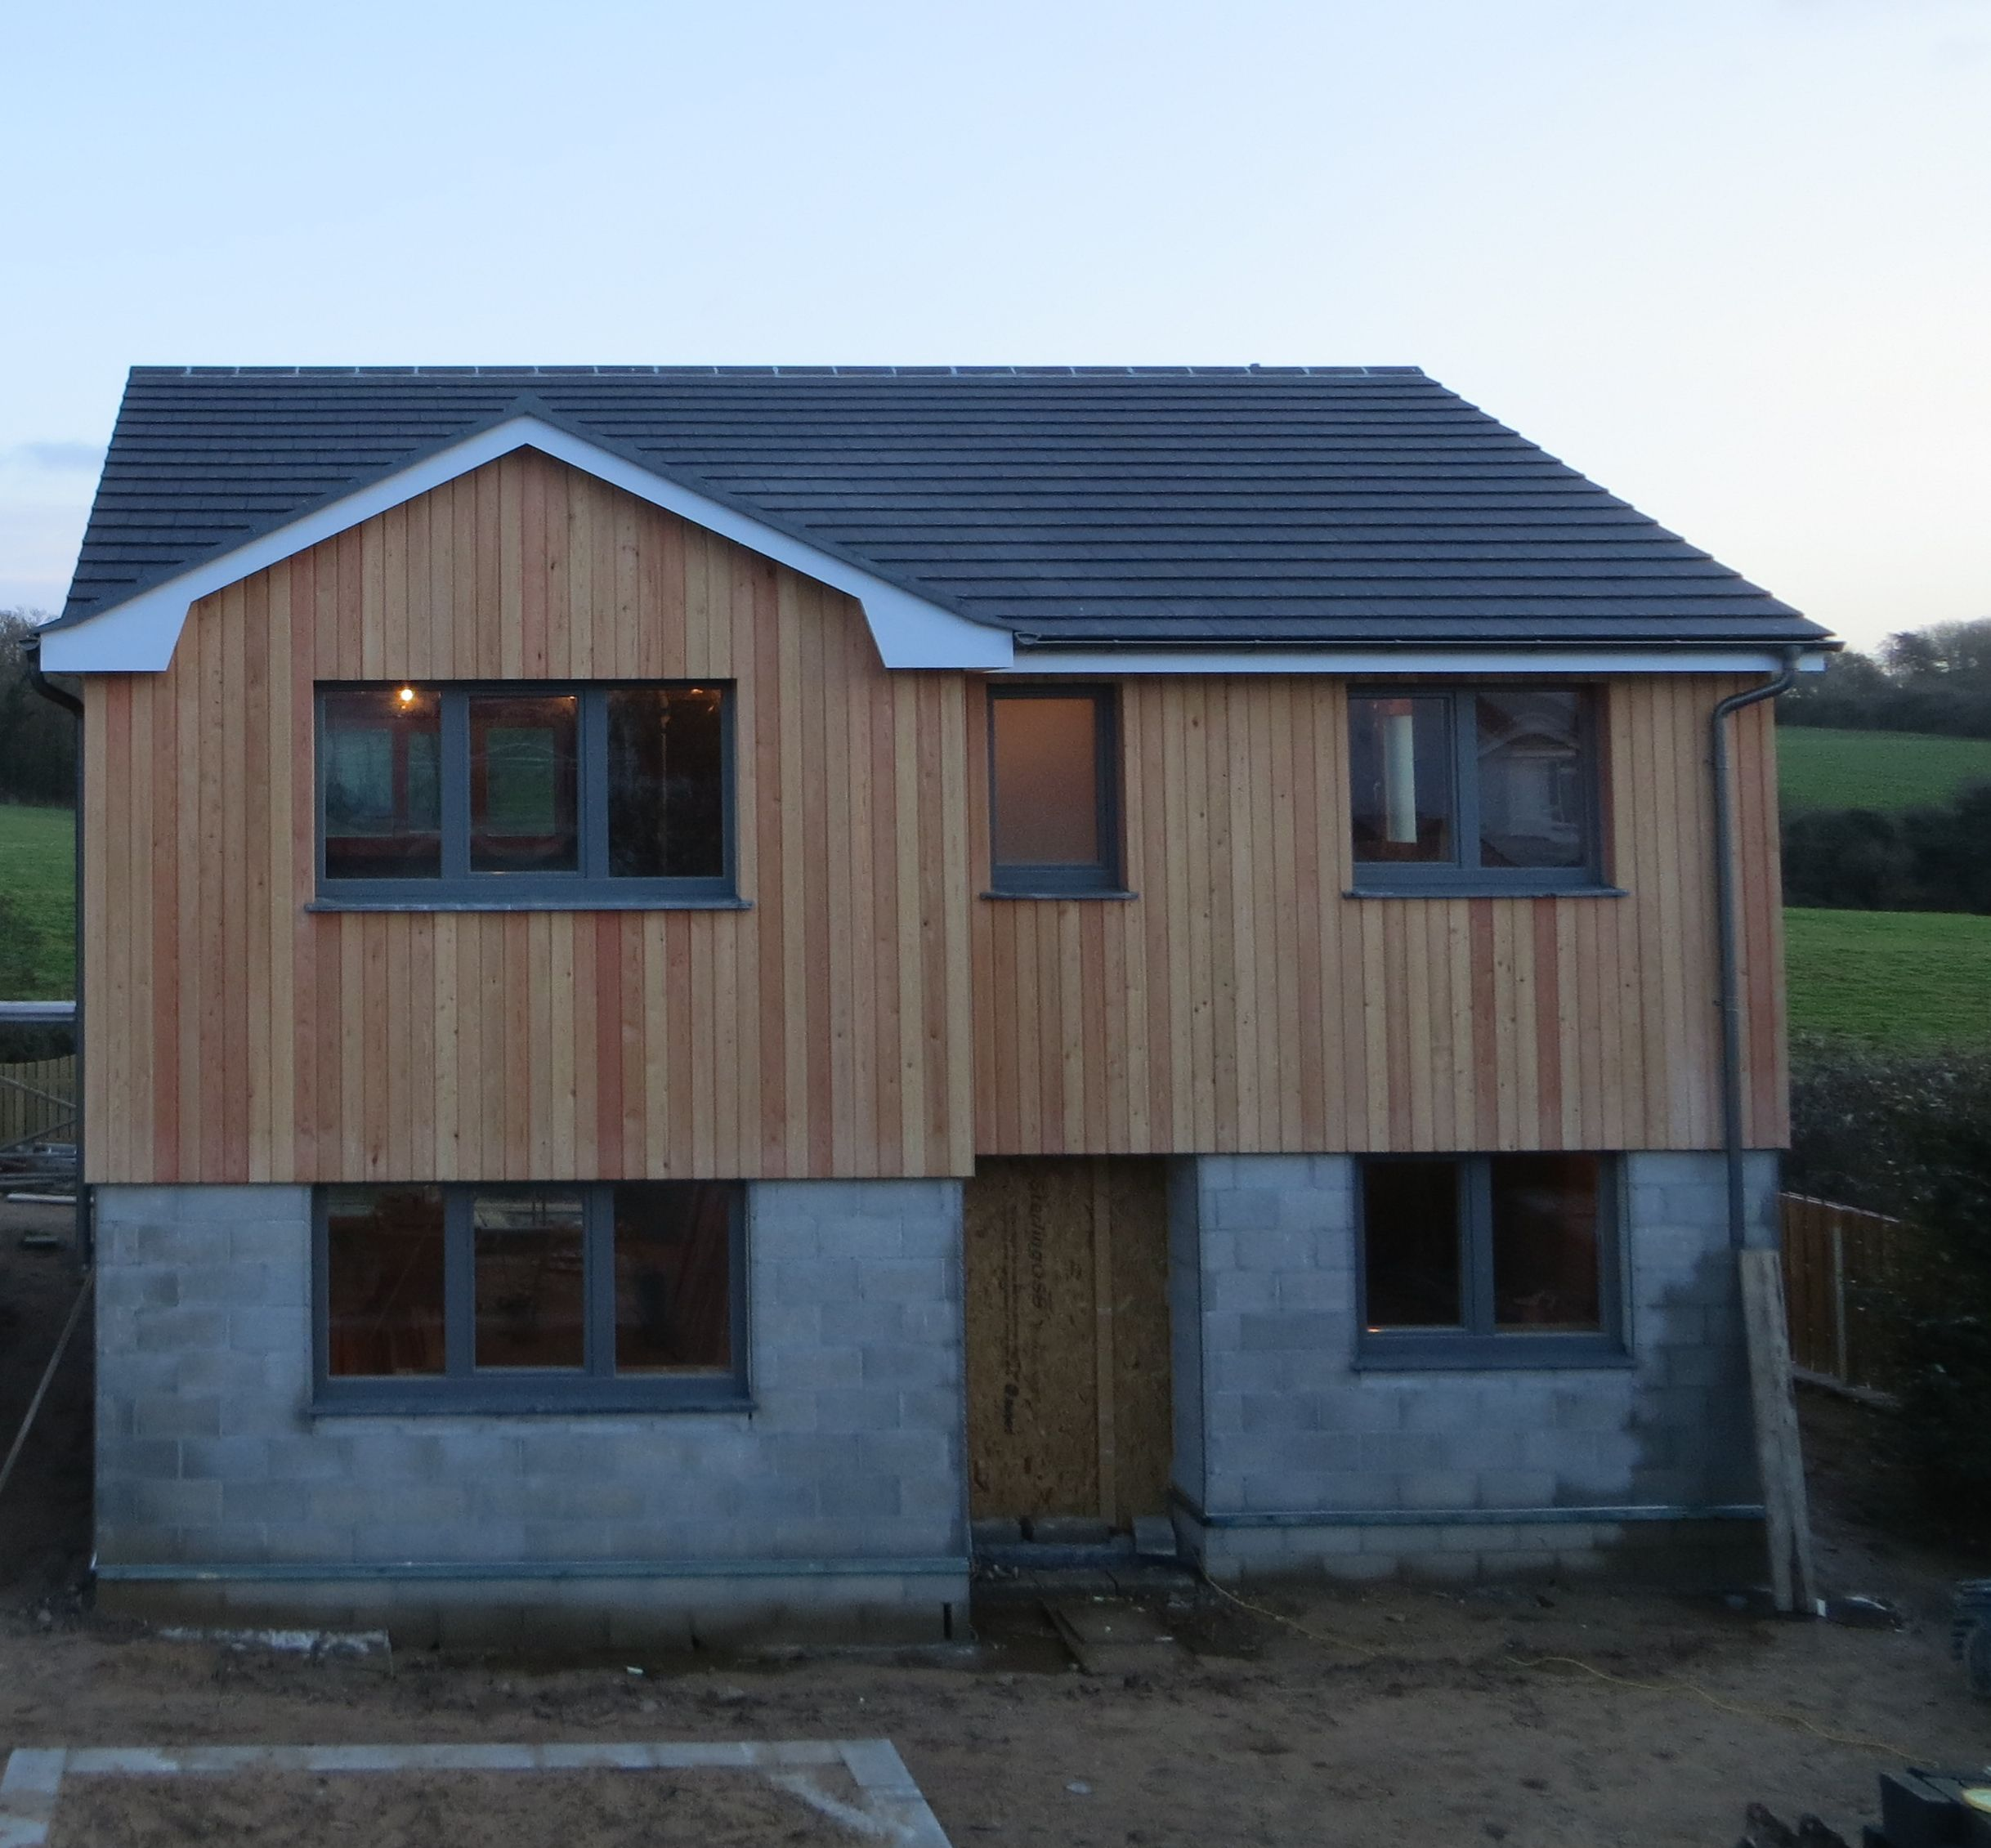 Siberian Larch Cladding househustalo Larch